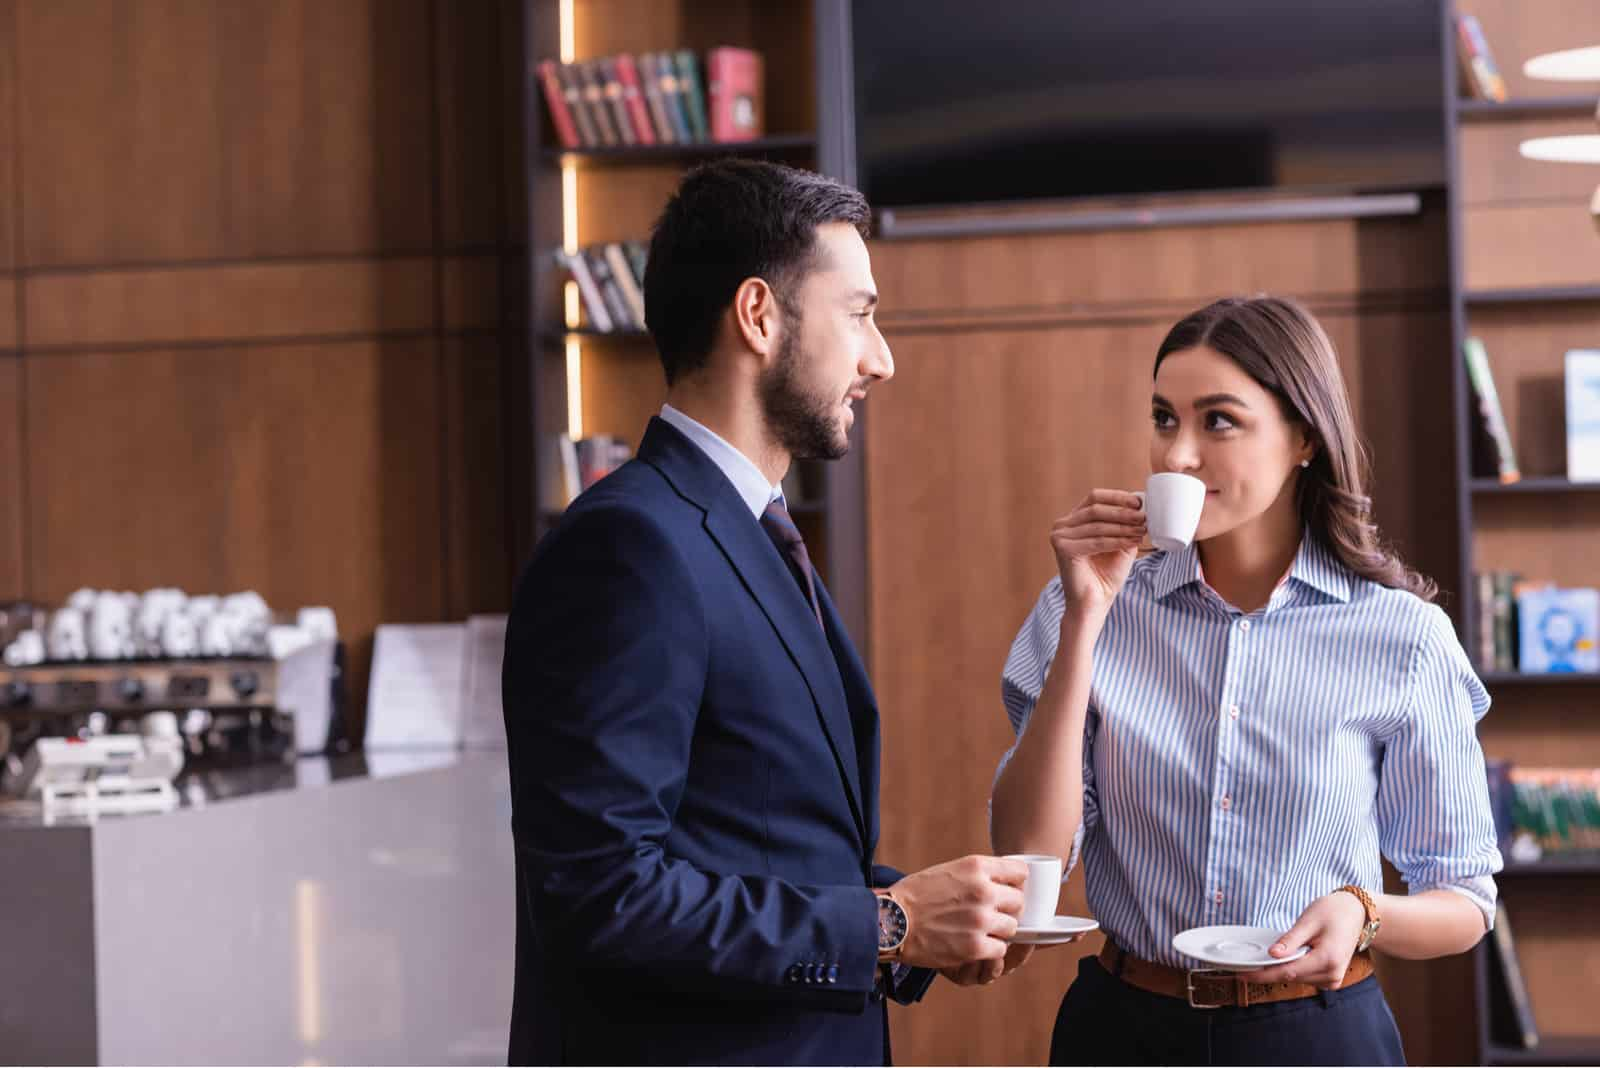 a man and a woman stand drinking coffee and talking